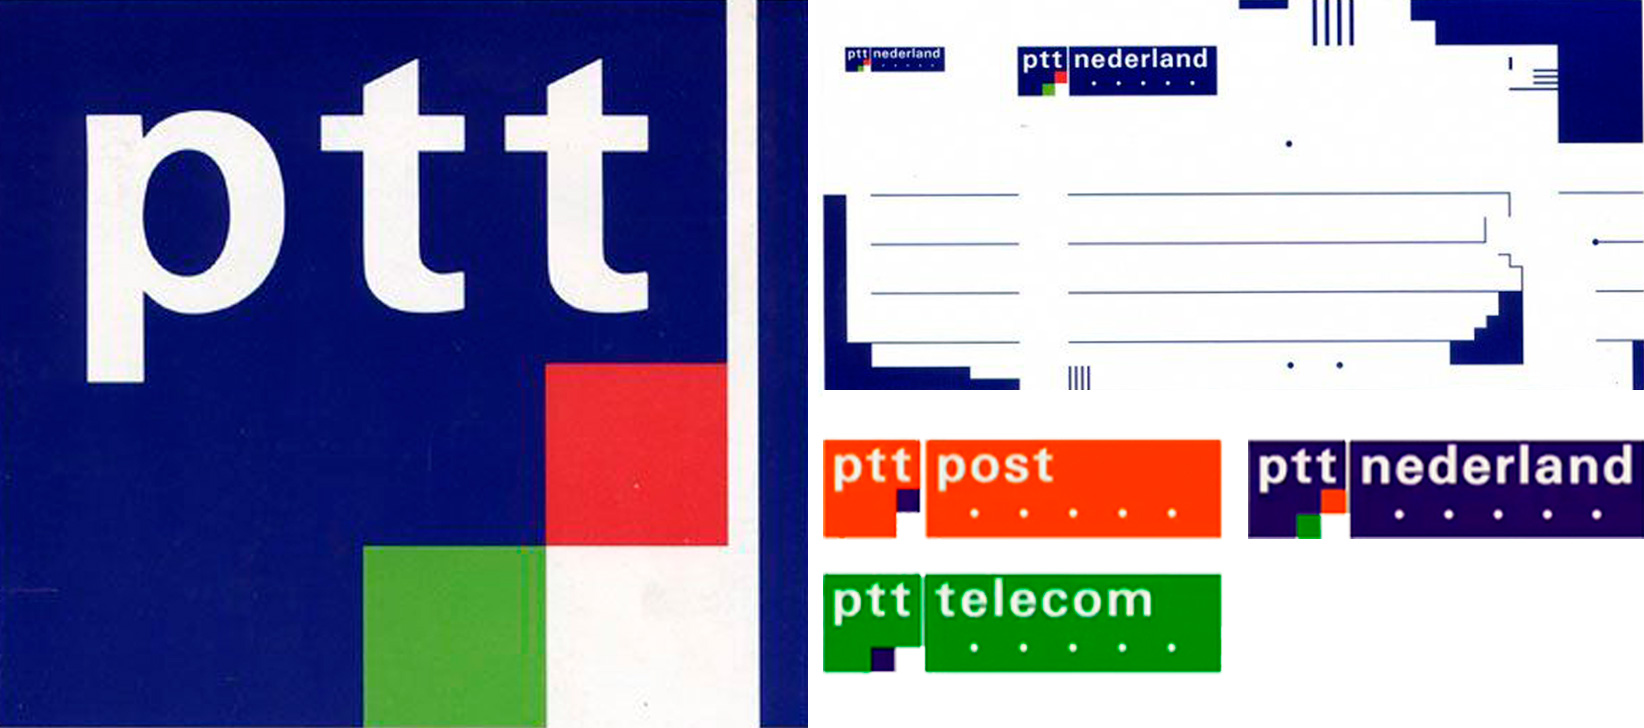 Gert-Dumbar-PTT-identity-index-grafik